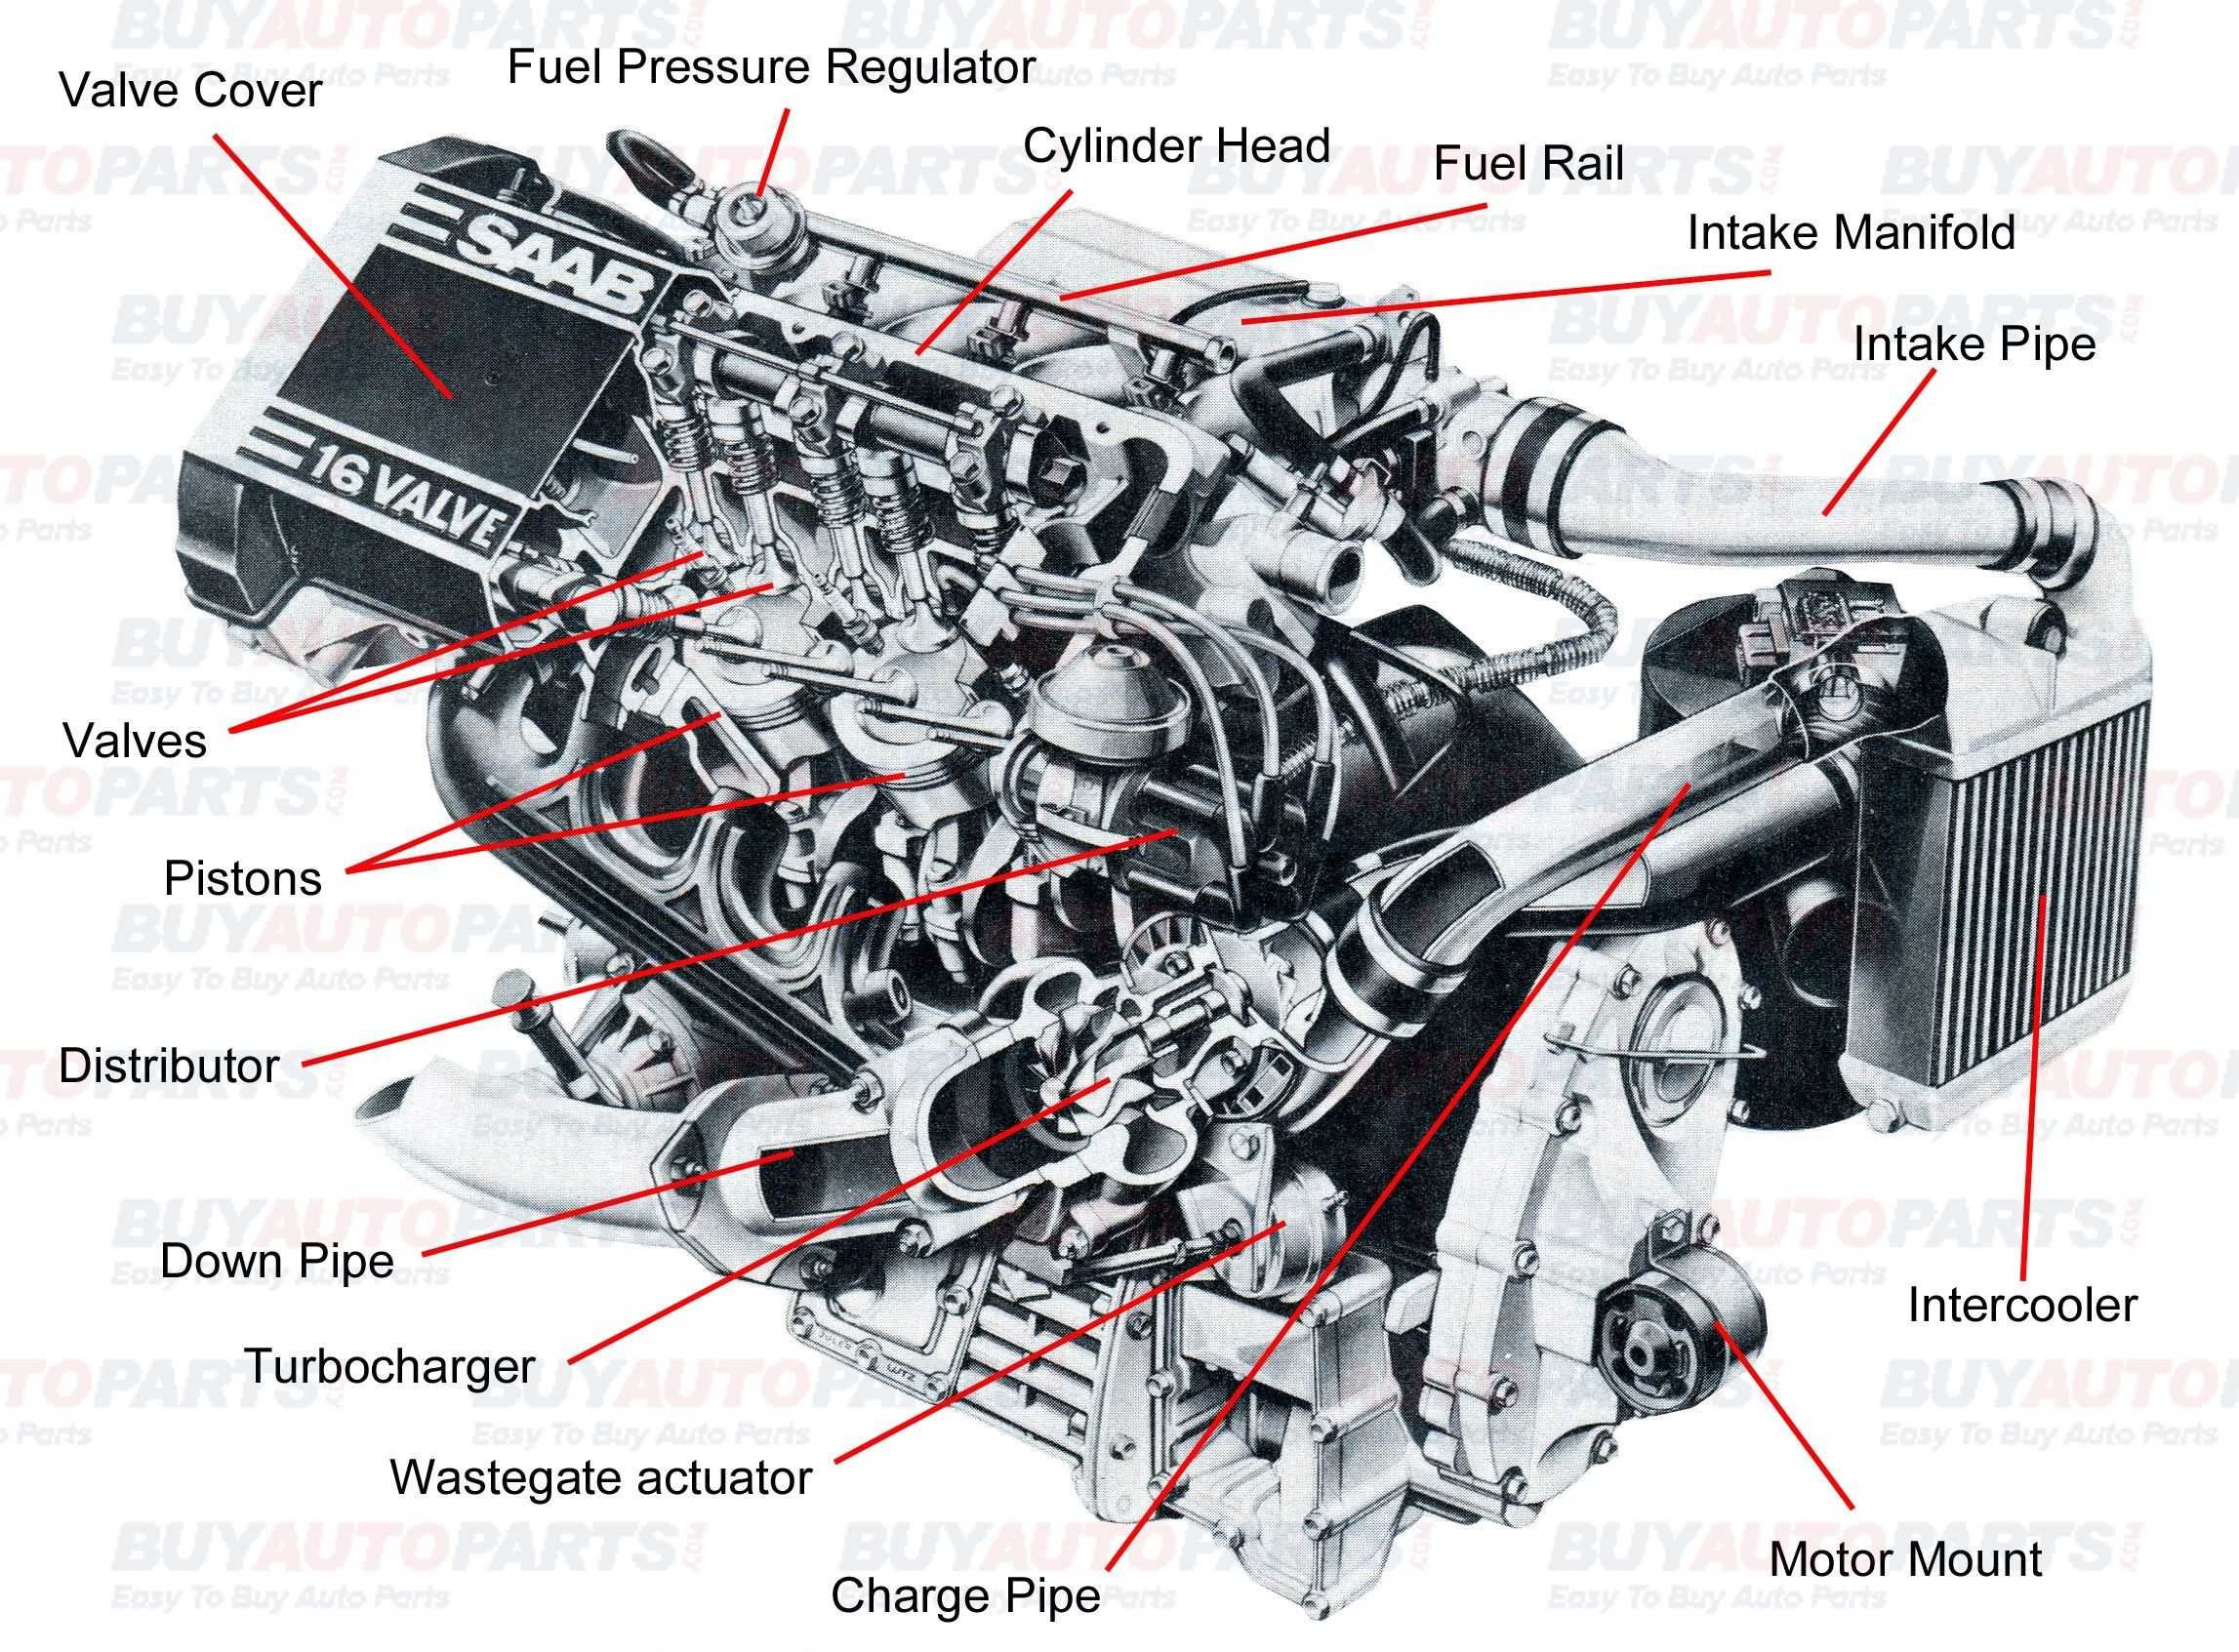 Diagram Of An Internal Combustion Engine All Internal Bustion Engines Have the Same Basic Ponents the Of Diagram Of An Internal Combustion Engine